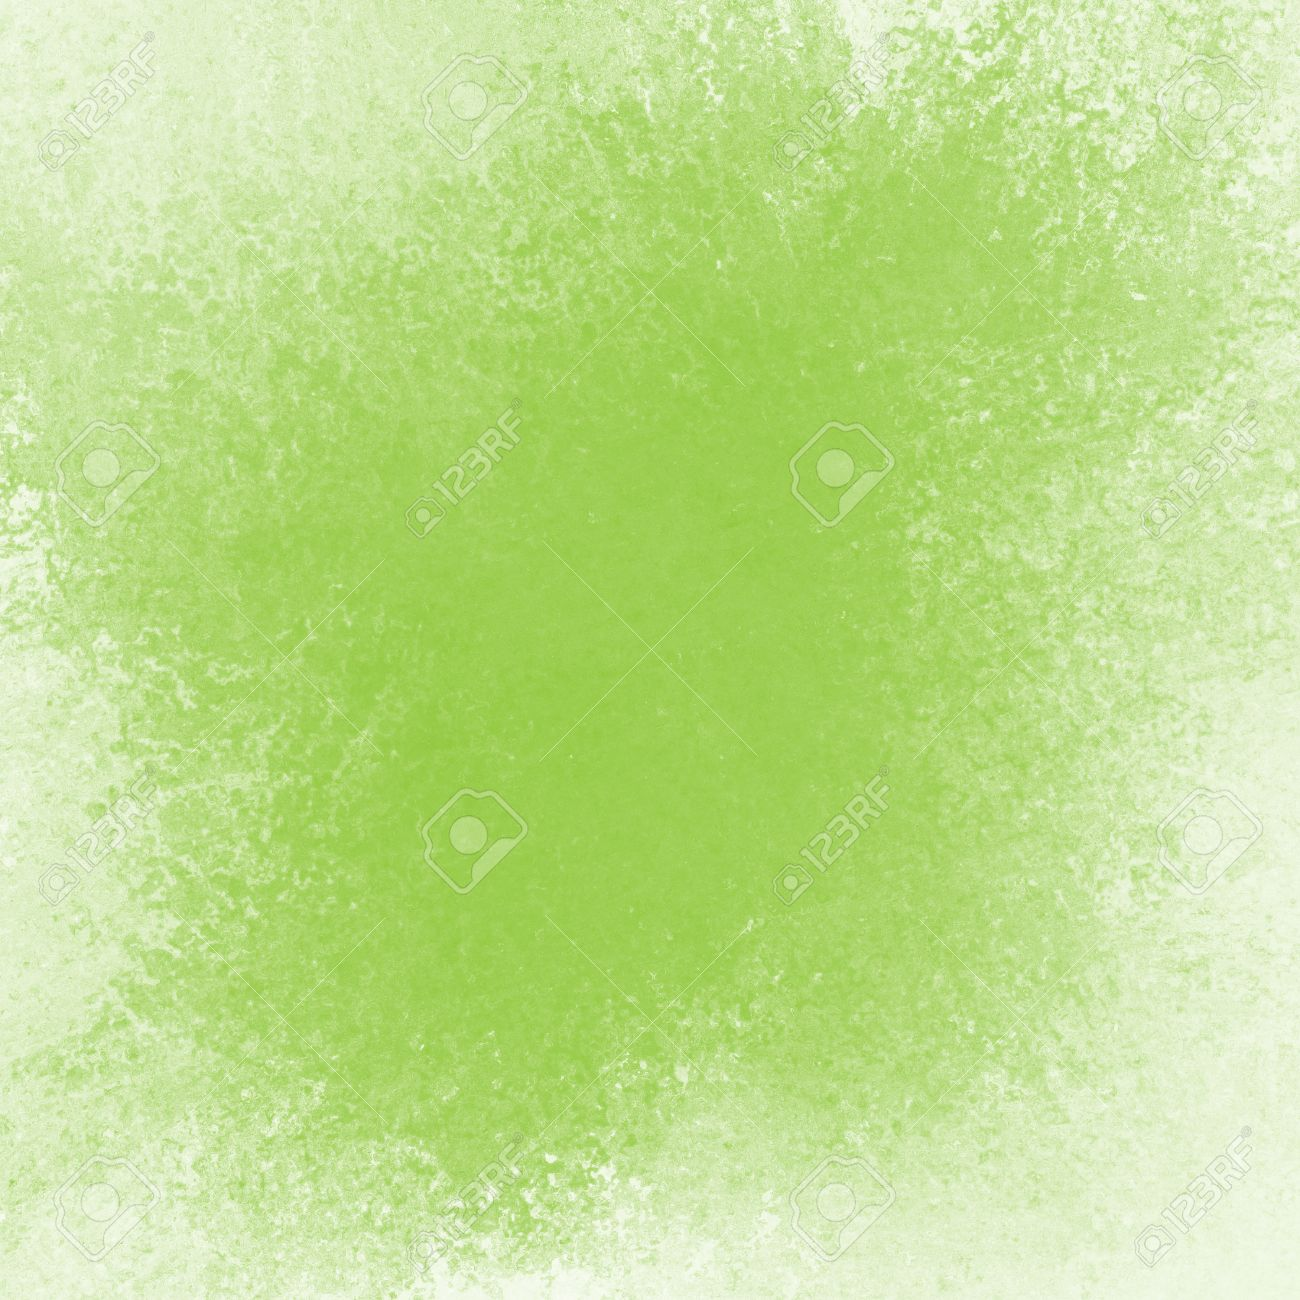 Soft Green Color Faded Lime Green Background Vintage Texture And Faded White